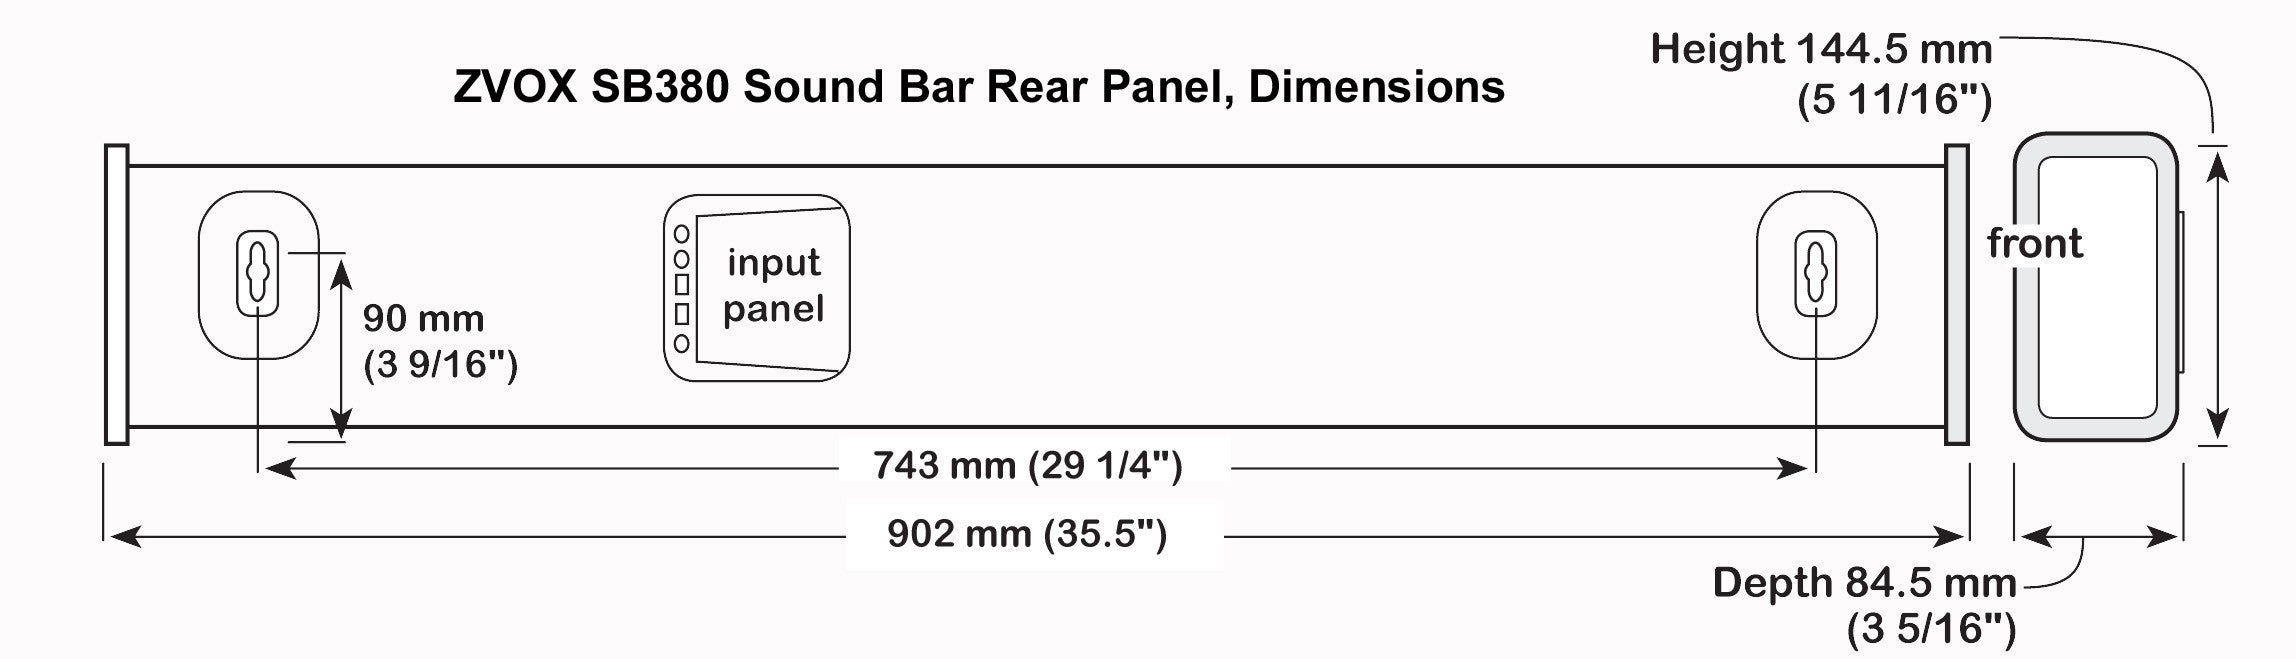 ZVOX_SB380_Back_Panel_and_Dimensions?15794086872157008249 manuals zvox audio sound bar wiring diagram at gsmx.co